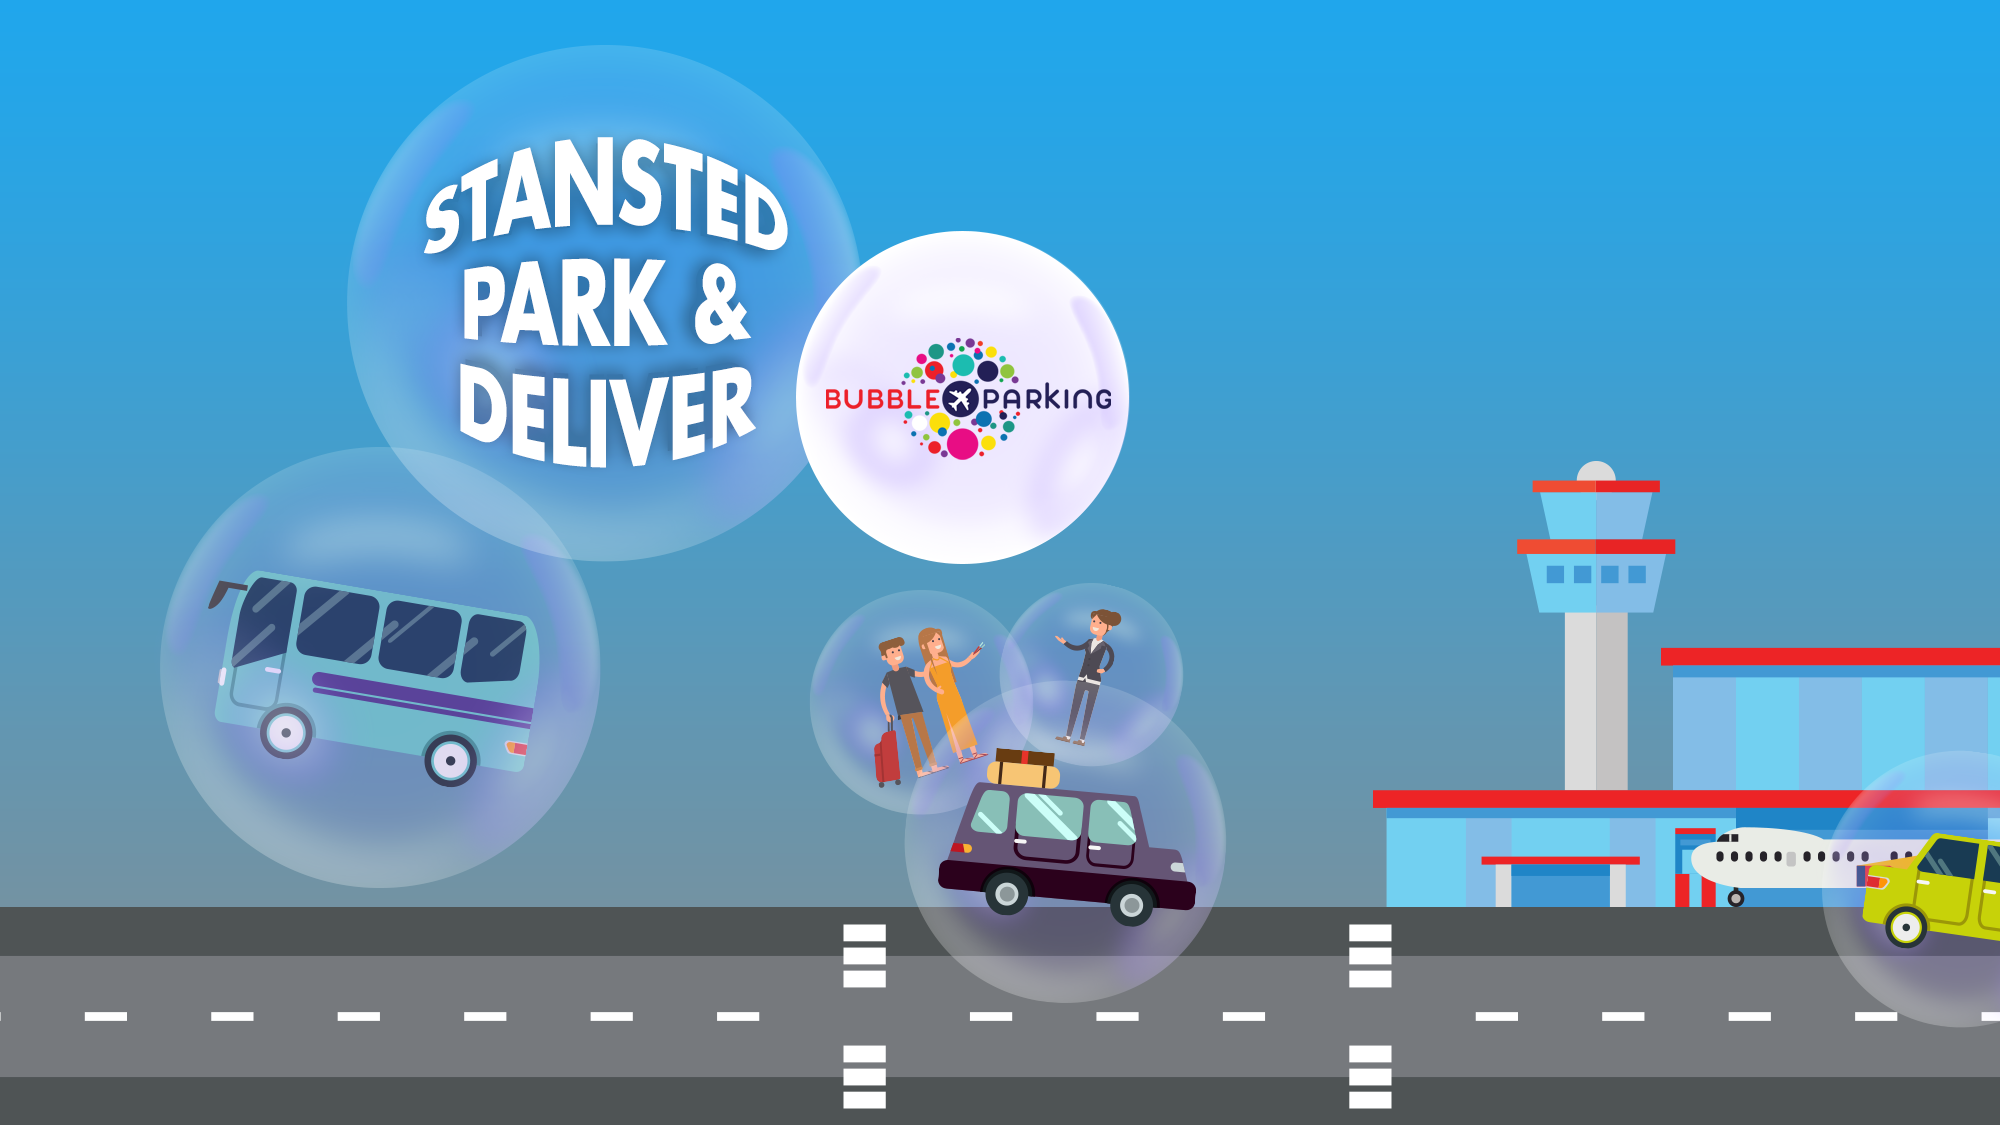 Bubble park and deliver at Stansted